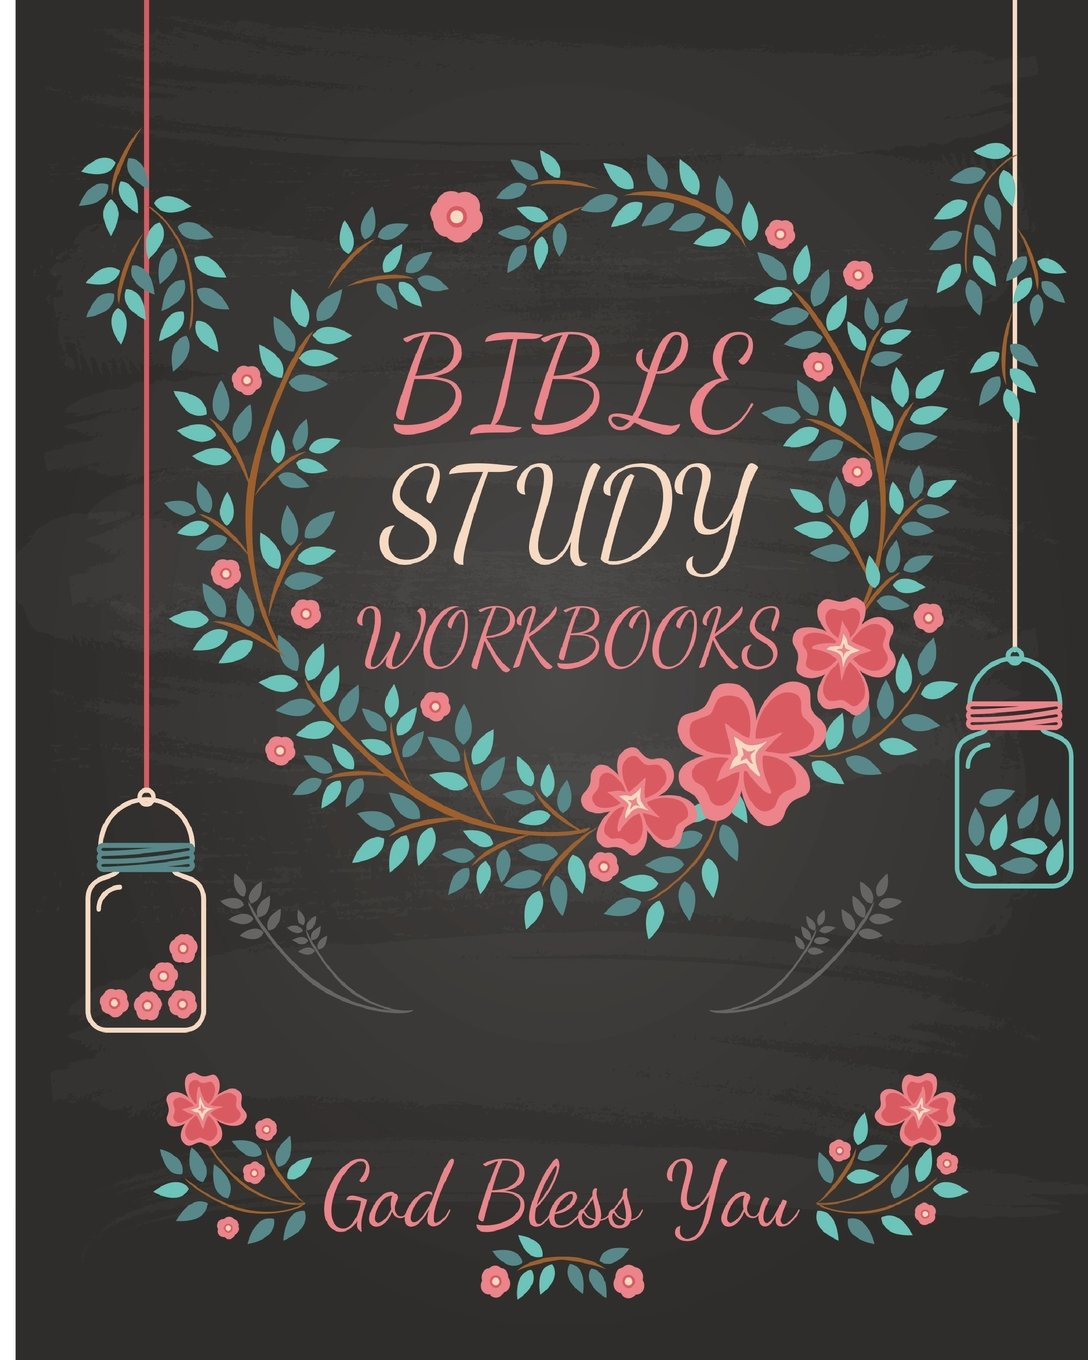 Download Bible Study Workbooks: Be Still 3 Months of Daily Journaling pages to Write Scripture, Reflection, Prayer & Praise 8x10Inches pdf epub